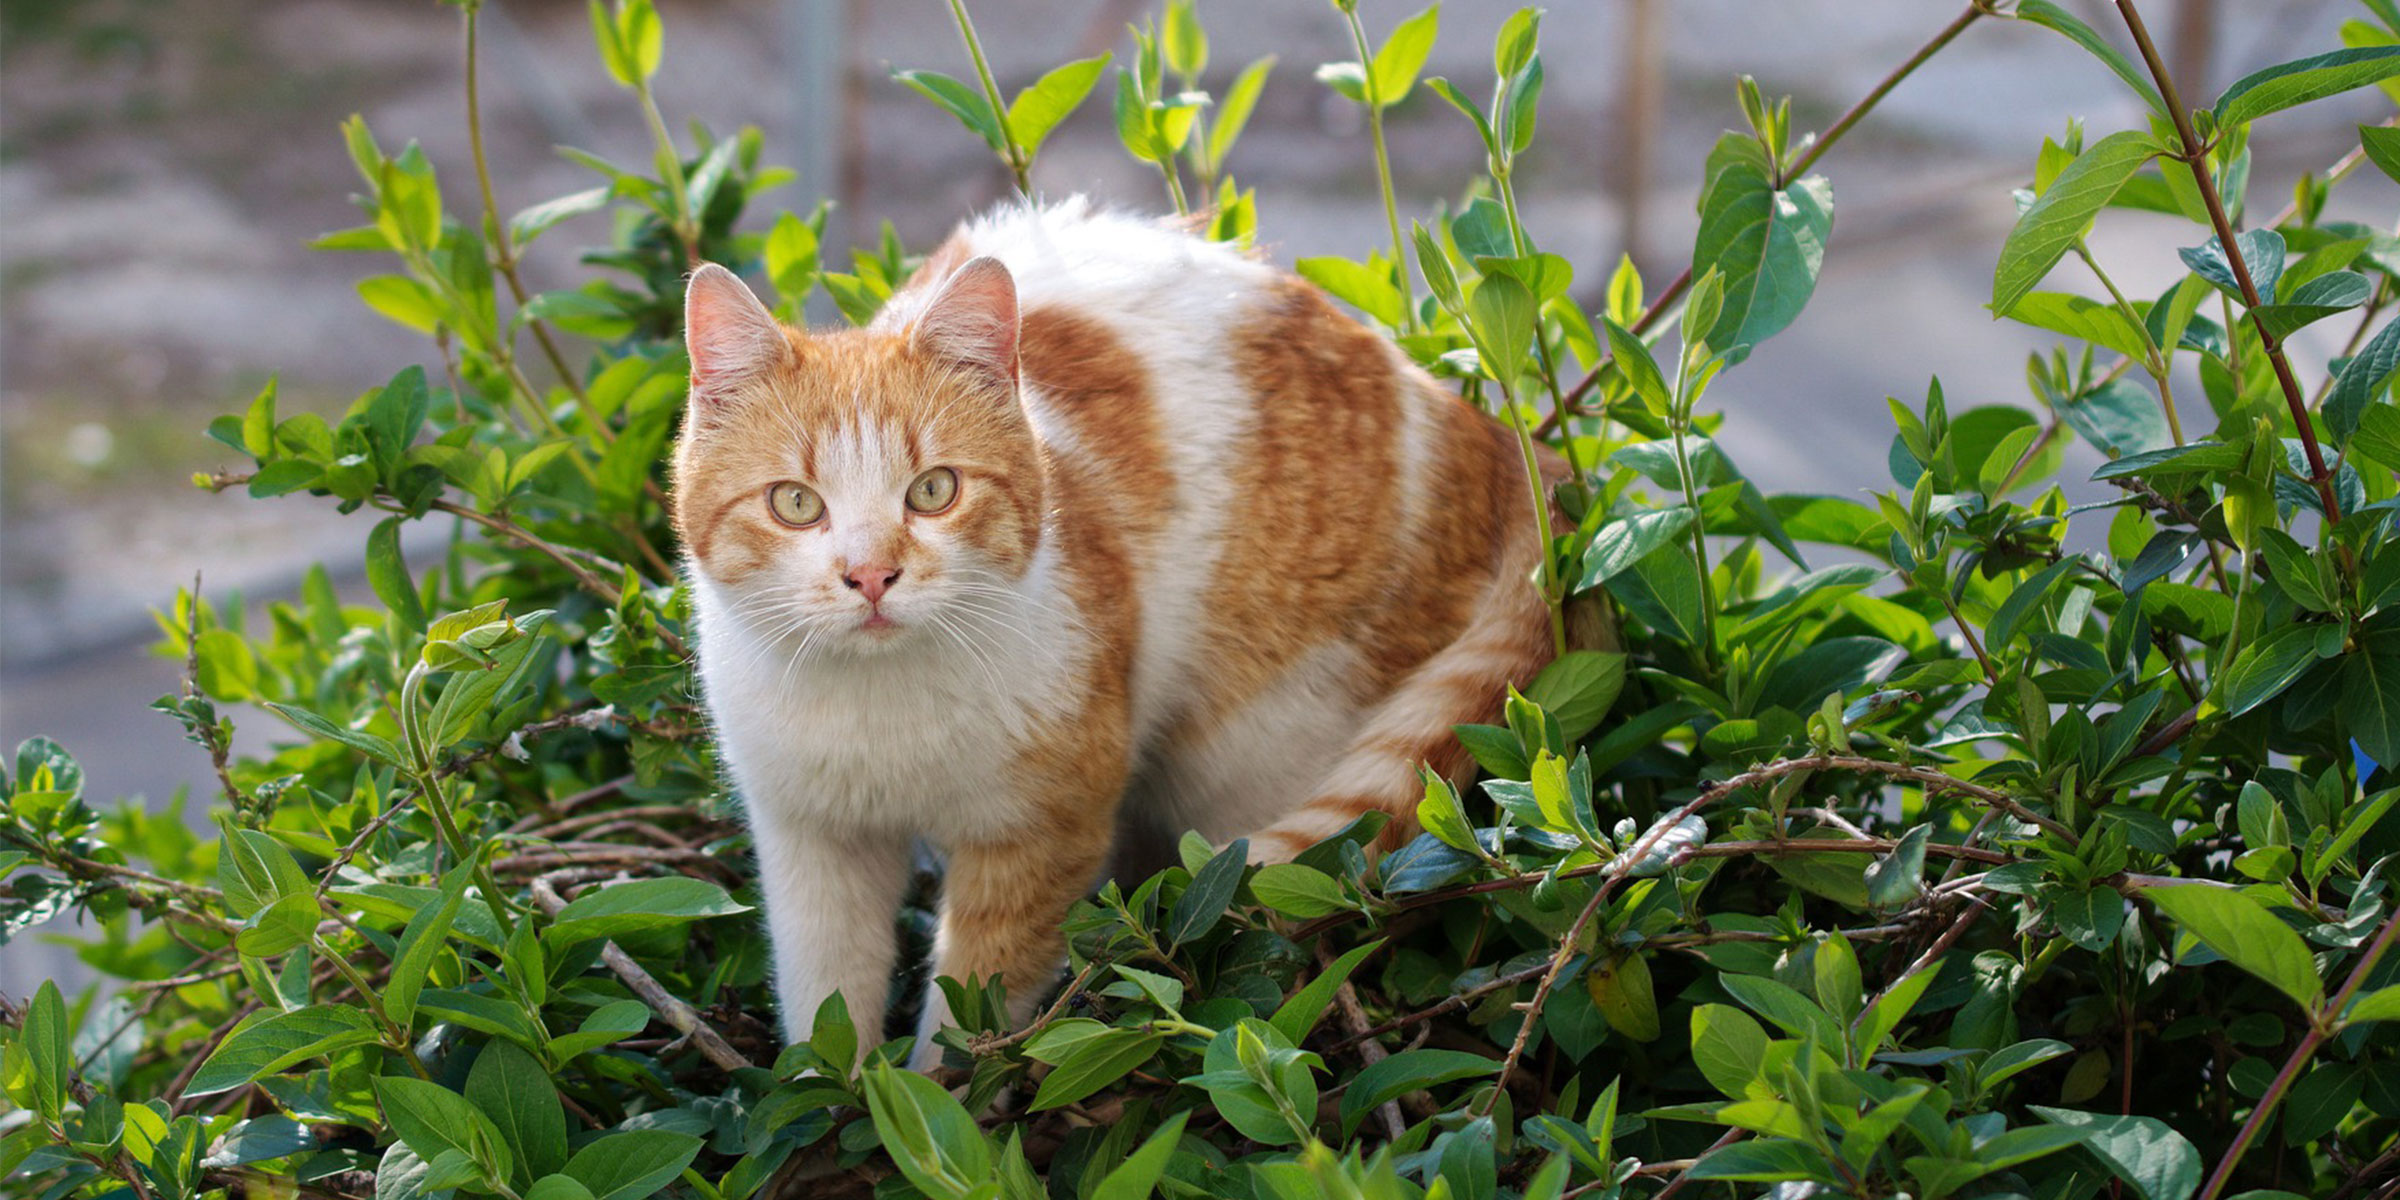 Keeping Cats Safe Plants And Cats International Cat Care